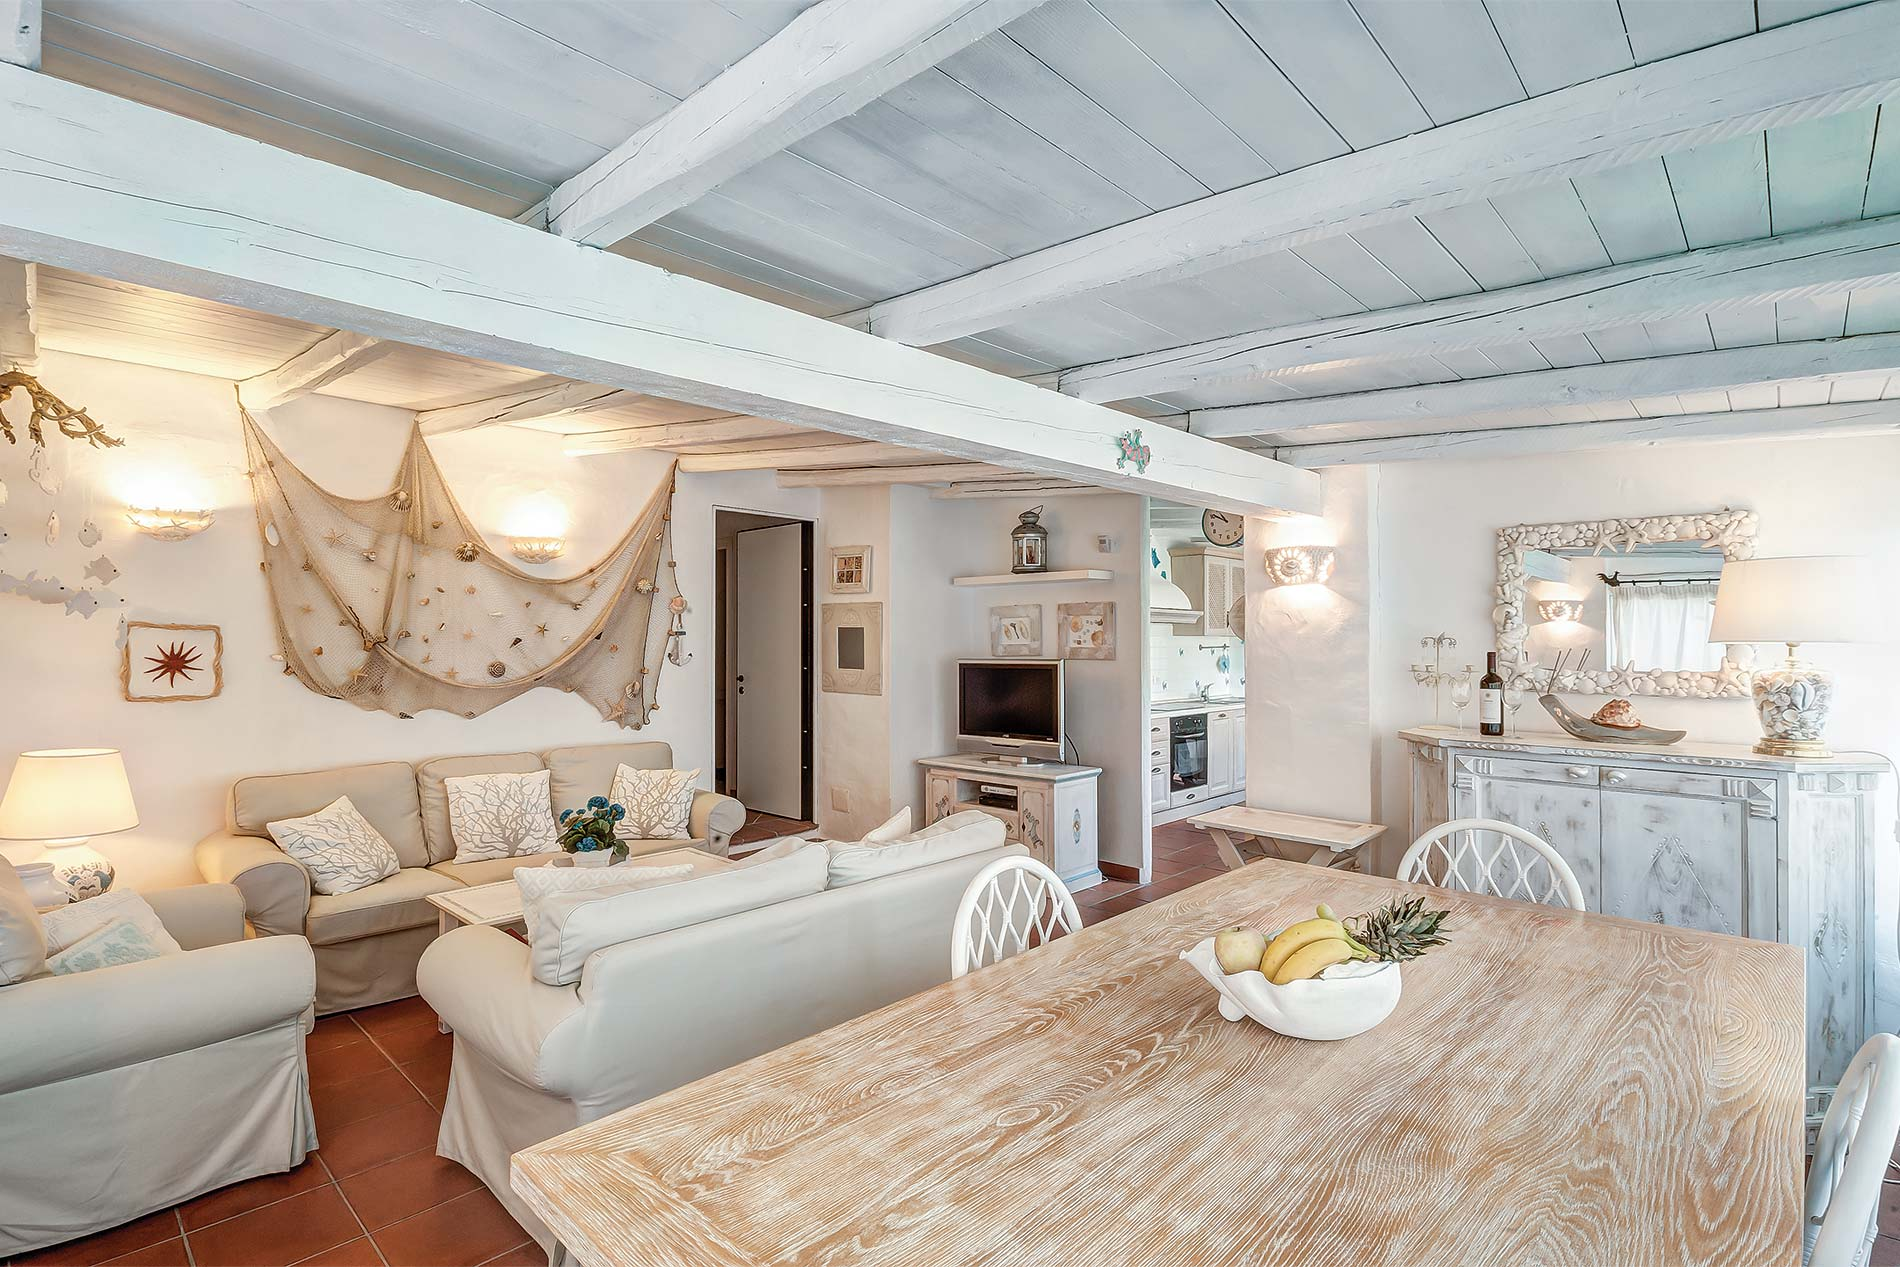 Villa Daniela in Porto Cervo - sleeps 5 people